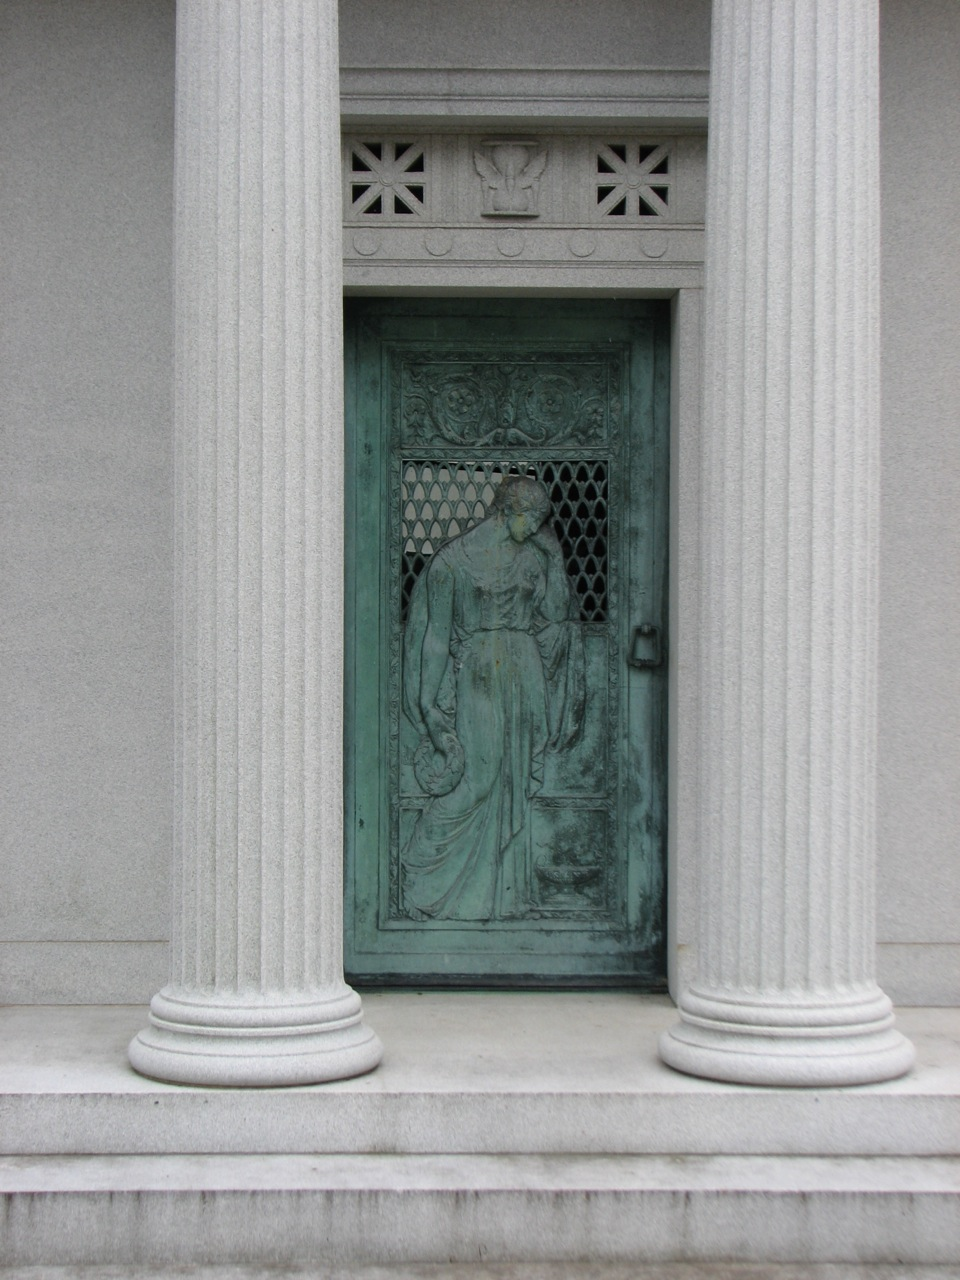 Classical columns and the figure of a woman adorn the entrance to a turn-of-the-century mausoleum.